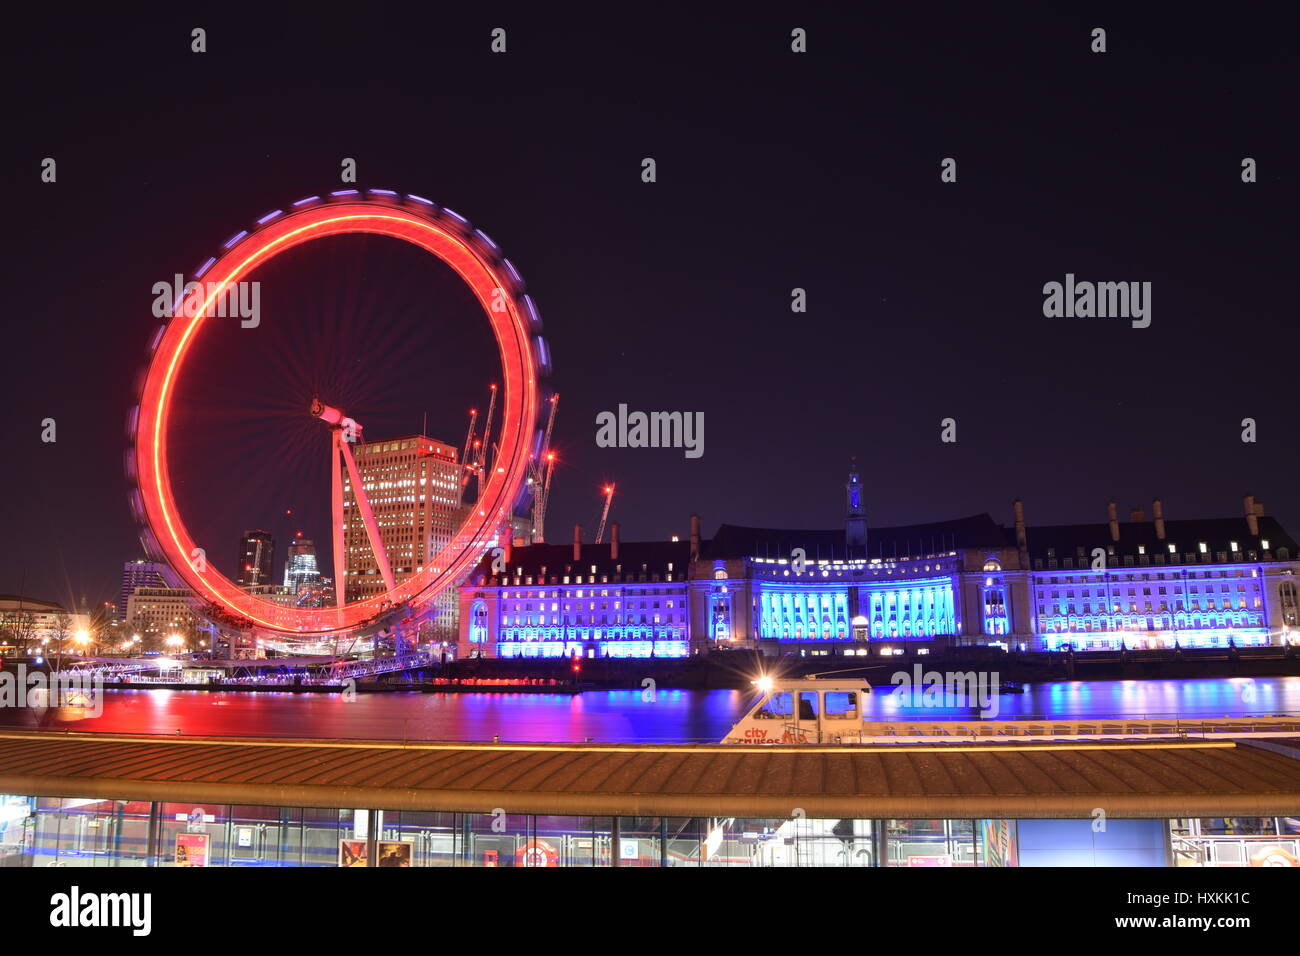 London Eye at night - Stock Image